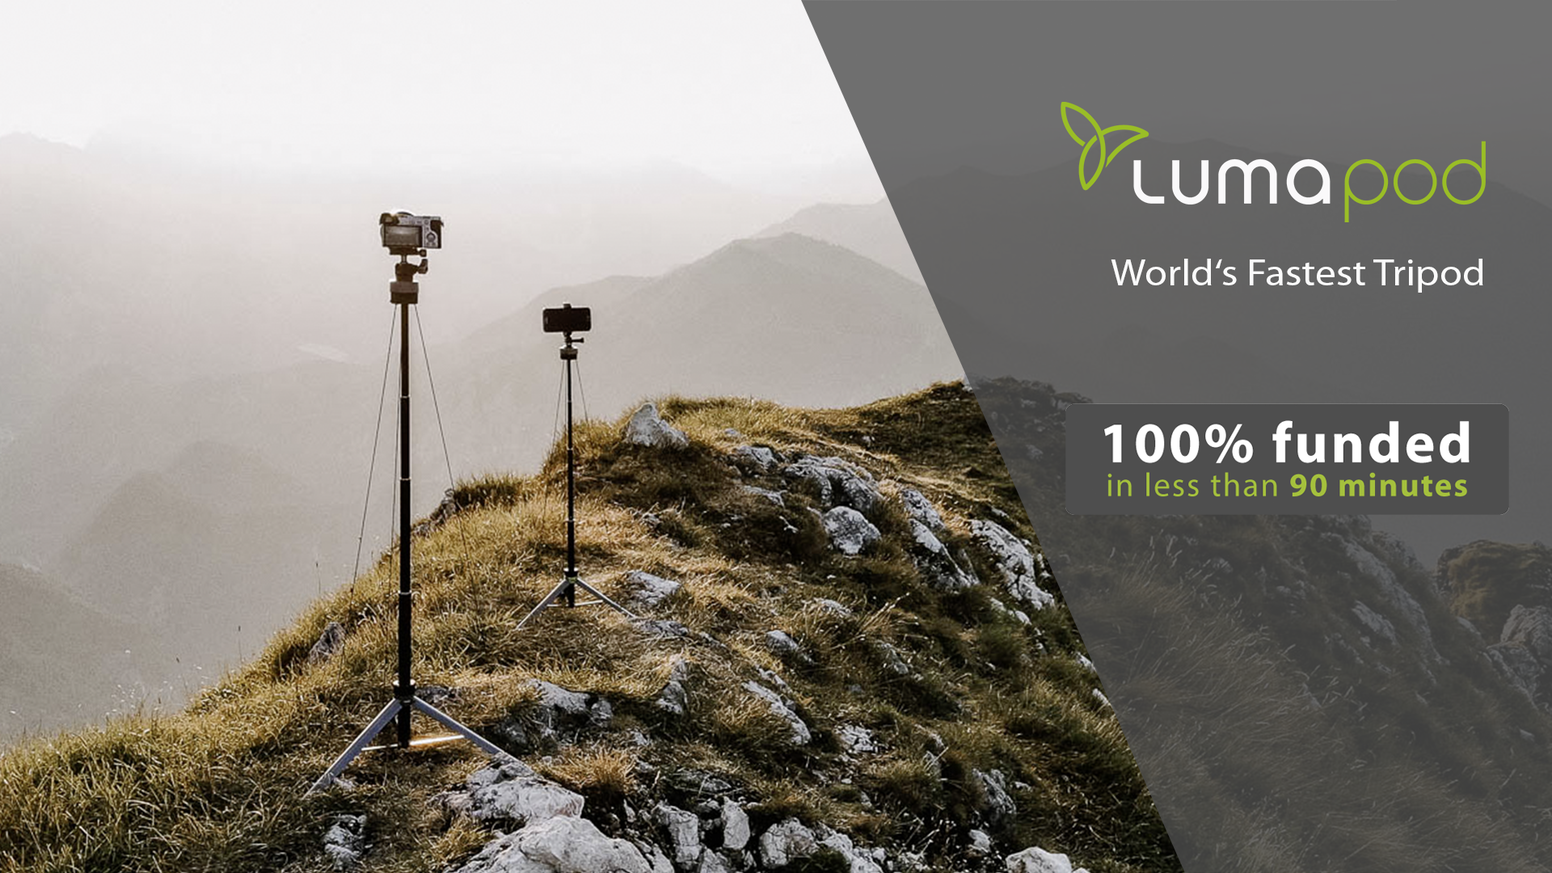 An ultra-compact and lightning fast tripod solution for those who enjoy exploring freely.